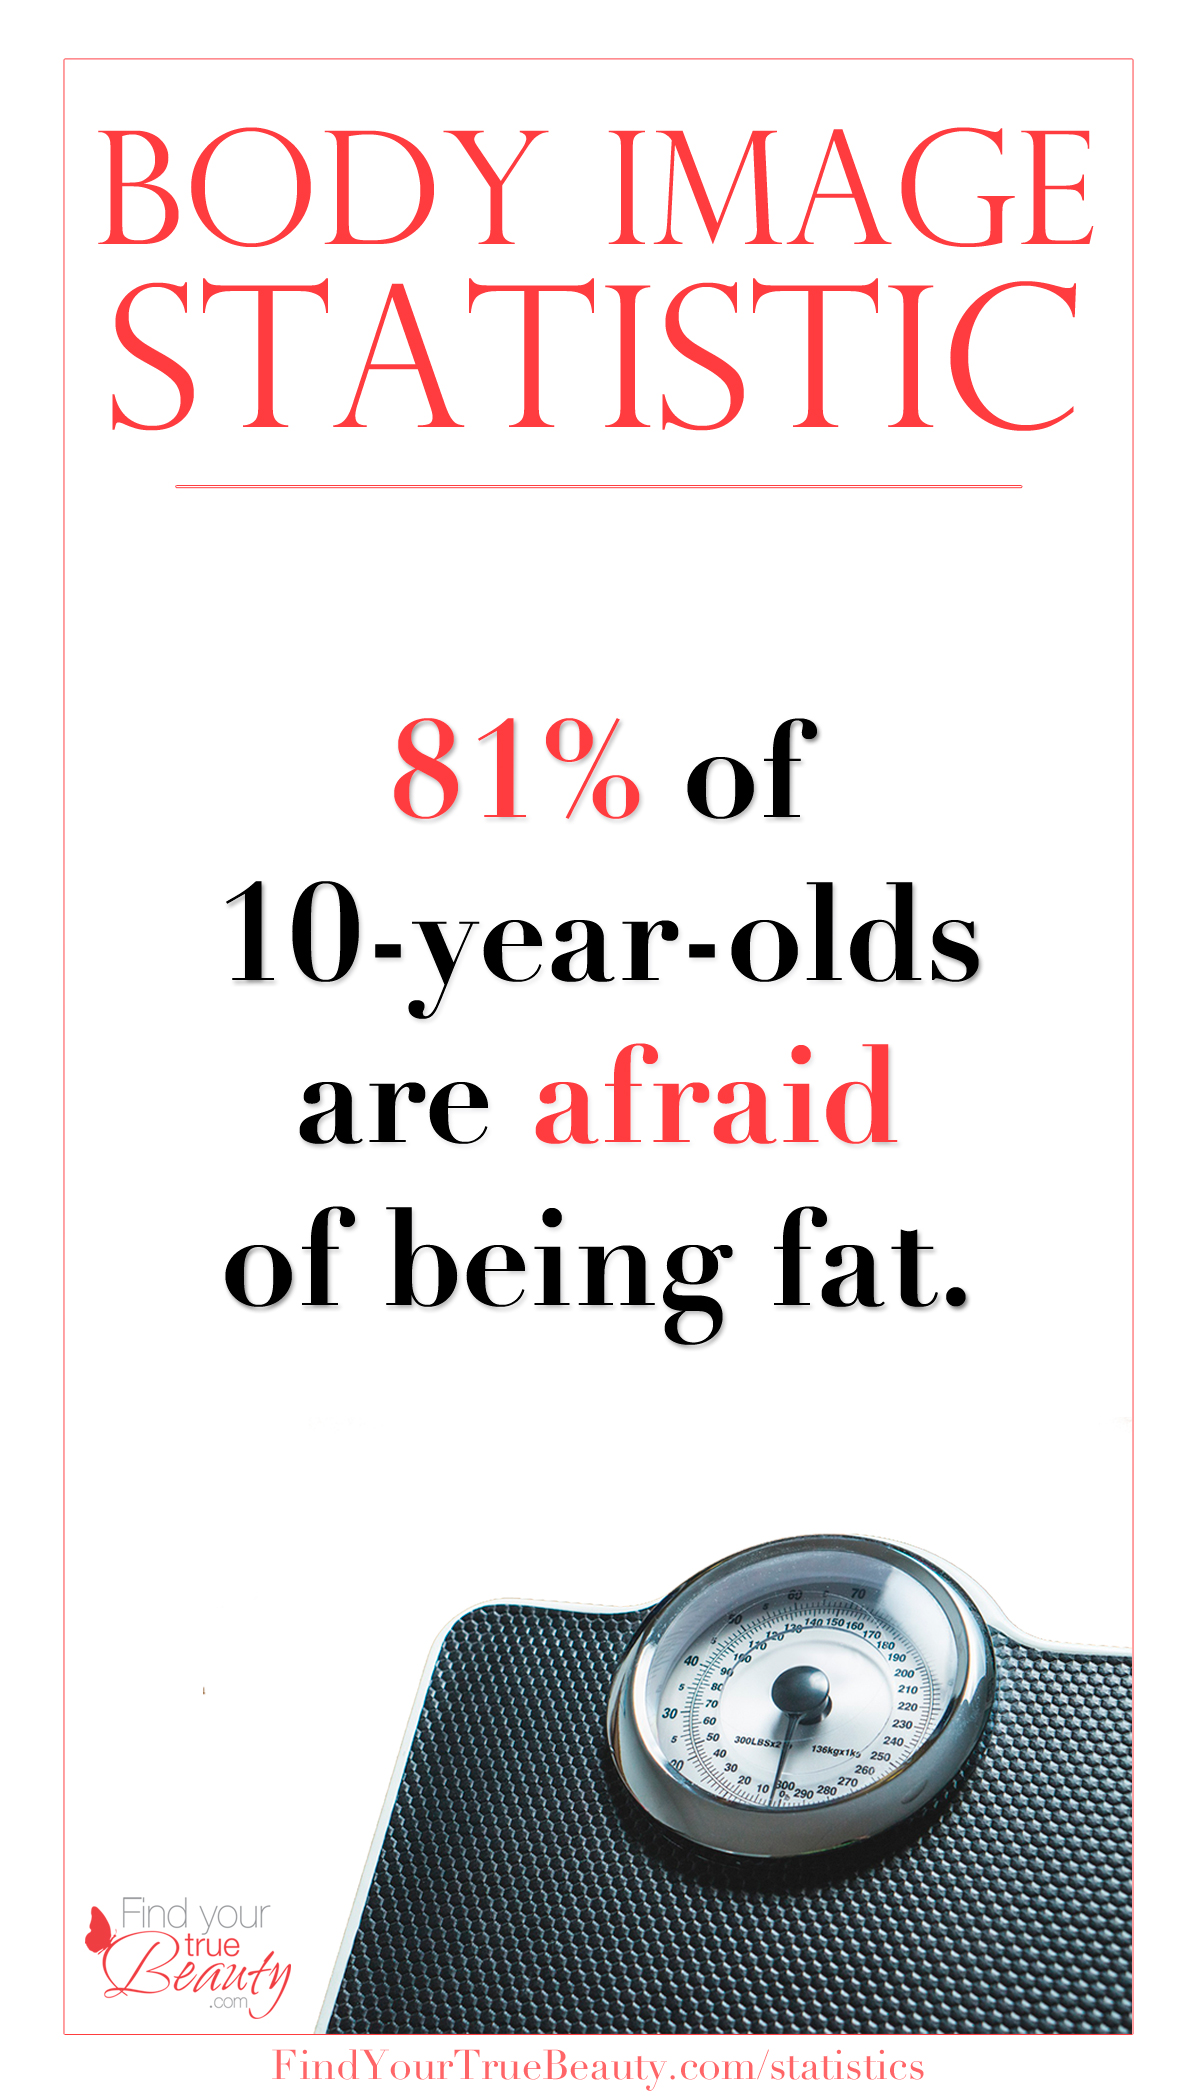 Body Image Statistic: 81% of 10-year-olds are afraid of being fat.